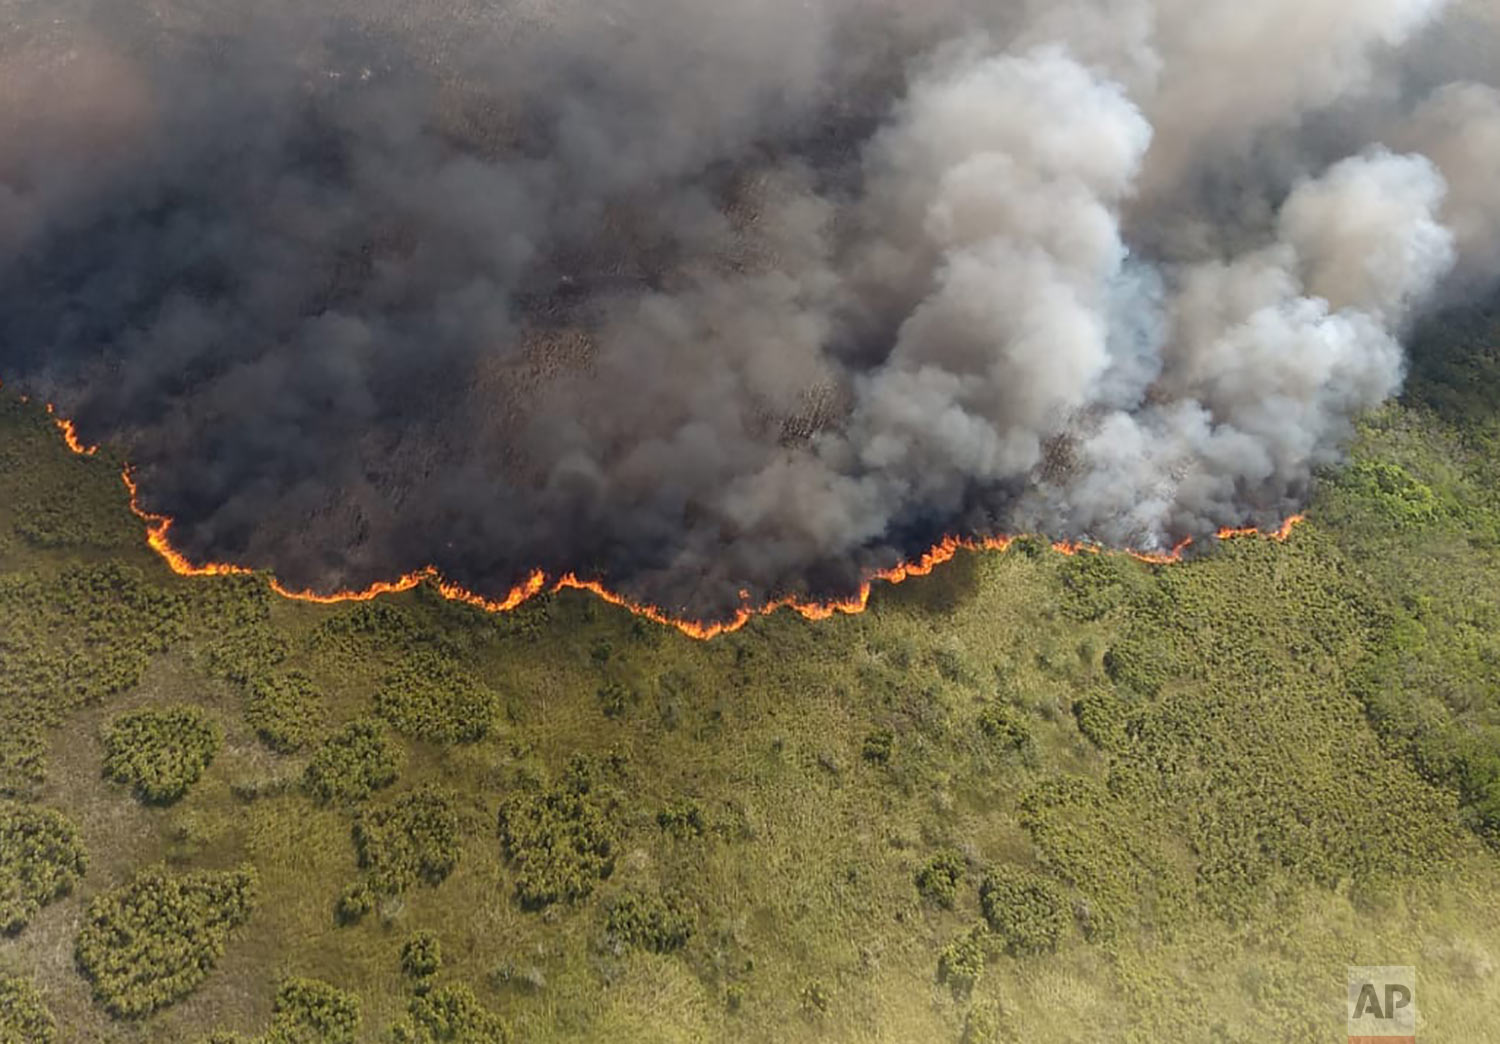 This photo distributed by Mexico's Secretary of Ecology and the Environment (SEMA) in Quintana Roo state shows a fire burning in the Sian Ka'an nature reserve on the Yucatan peninsula, near Felipe Carrillo Puerto, Mexico, Sunday, July 14, 2019. The civil protection coordinator for the state of Quintana Roo said Sunday the fire has already consumed 600 hectares (1,500 acres) of brush and other plants. (SEMA via AP)